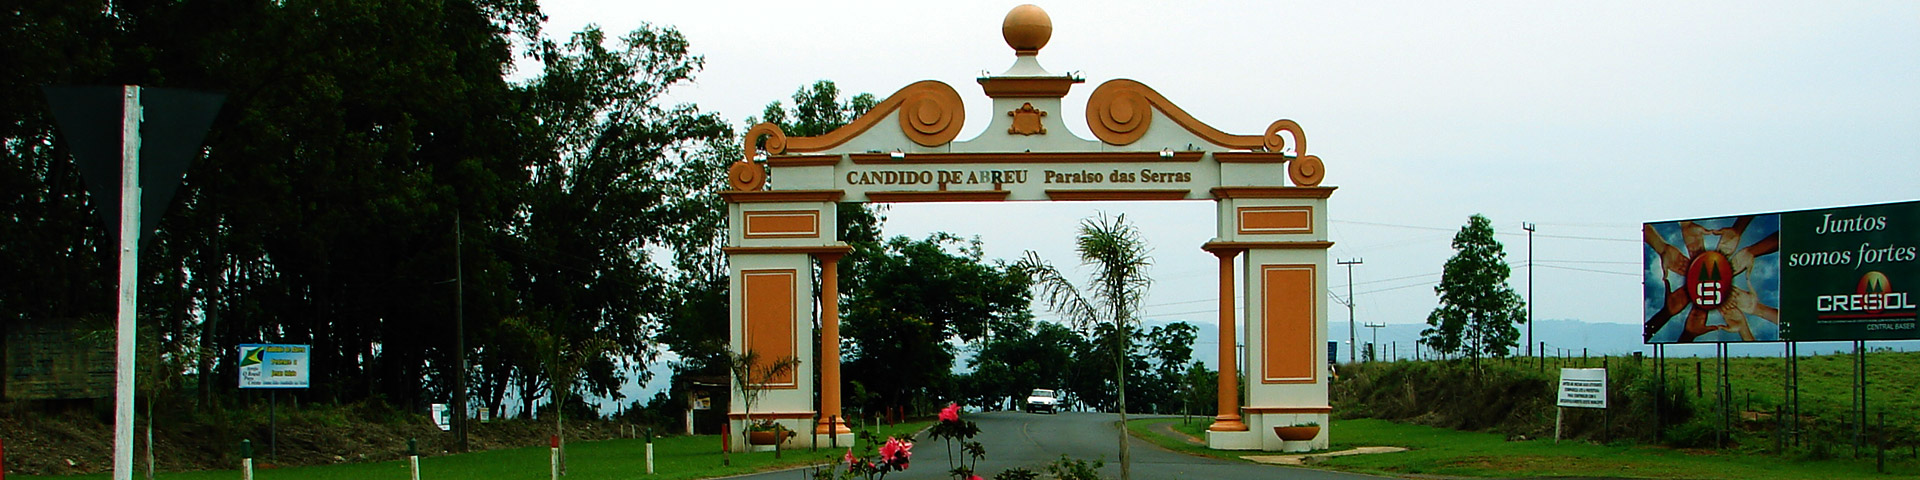 Portal de Entrada do Munic�pio